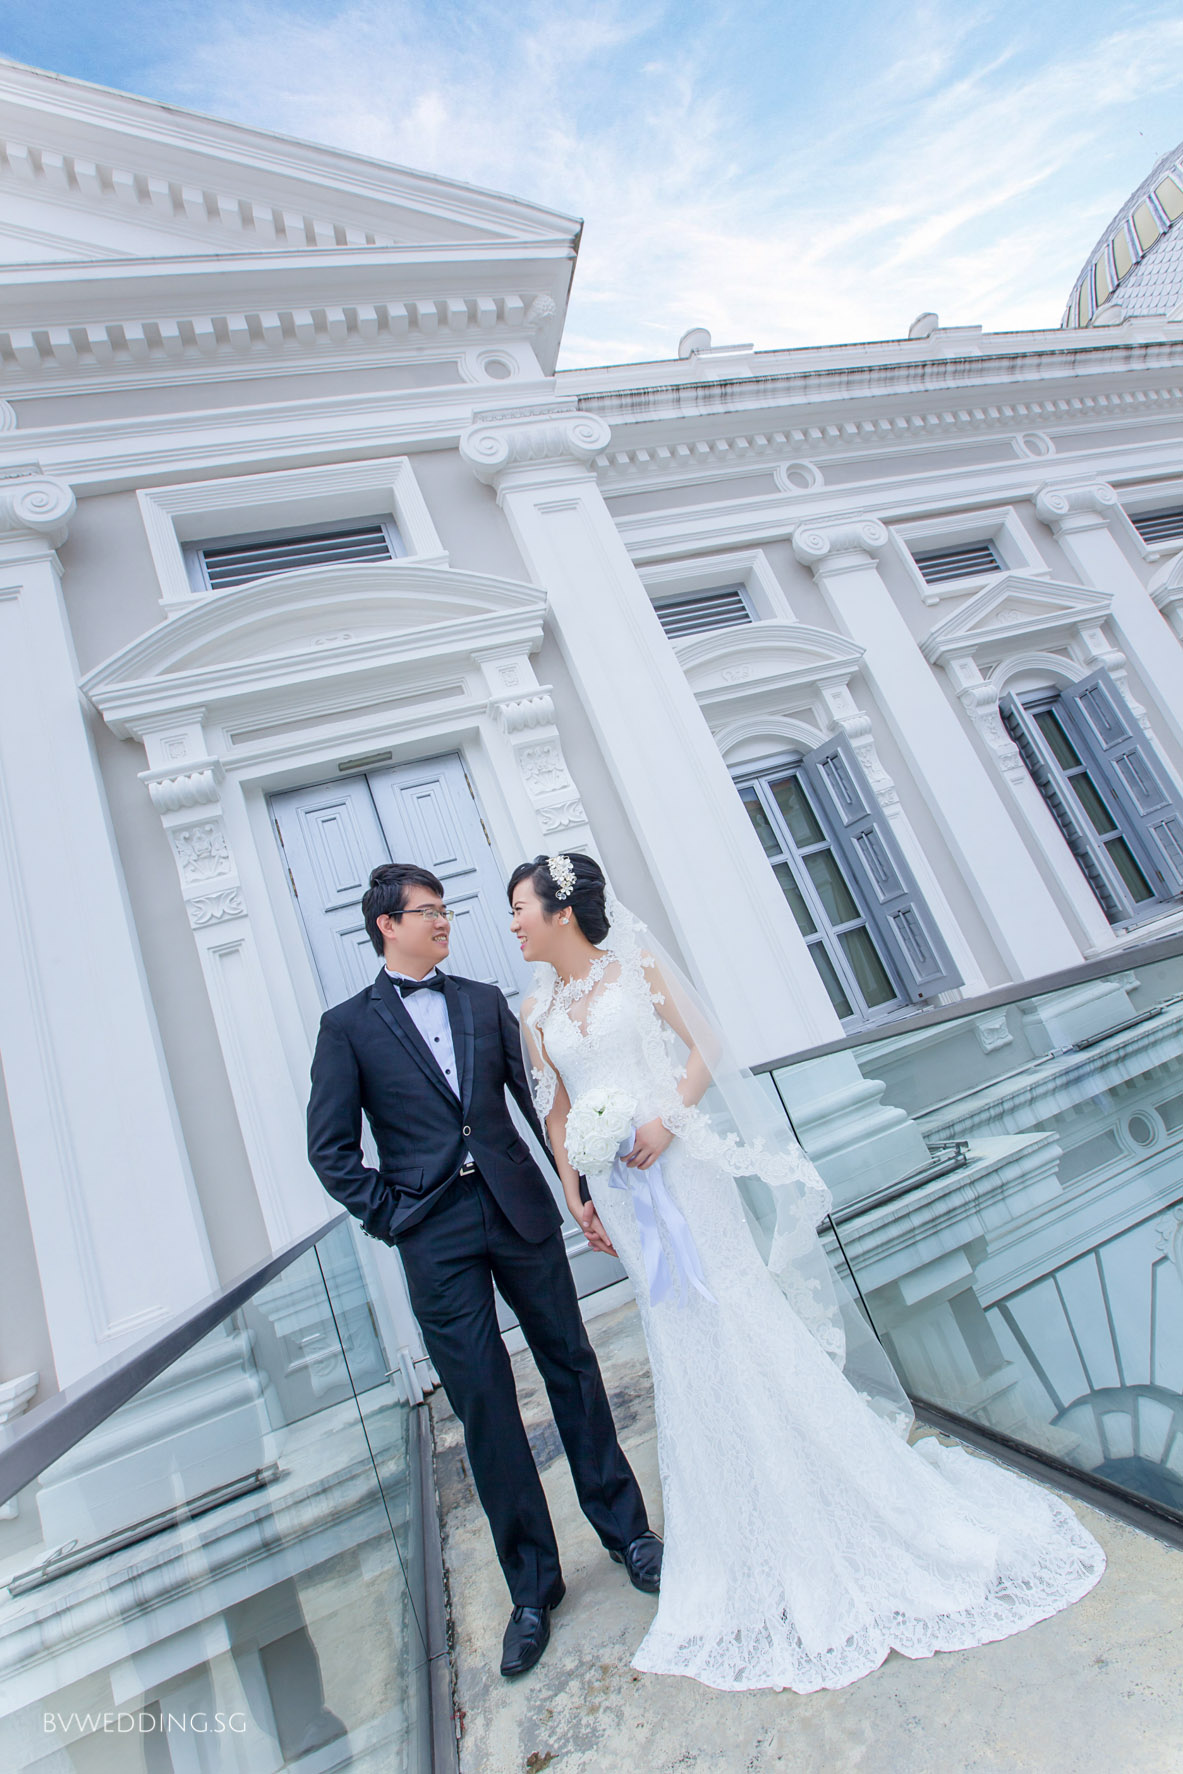 Pre-wedding photoshoot at national museum(outdoor)